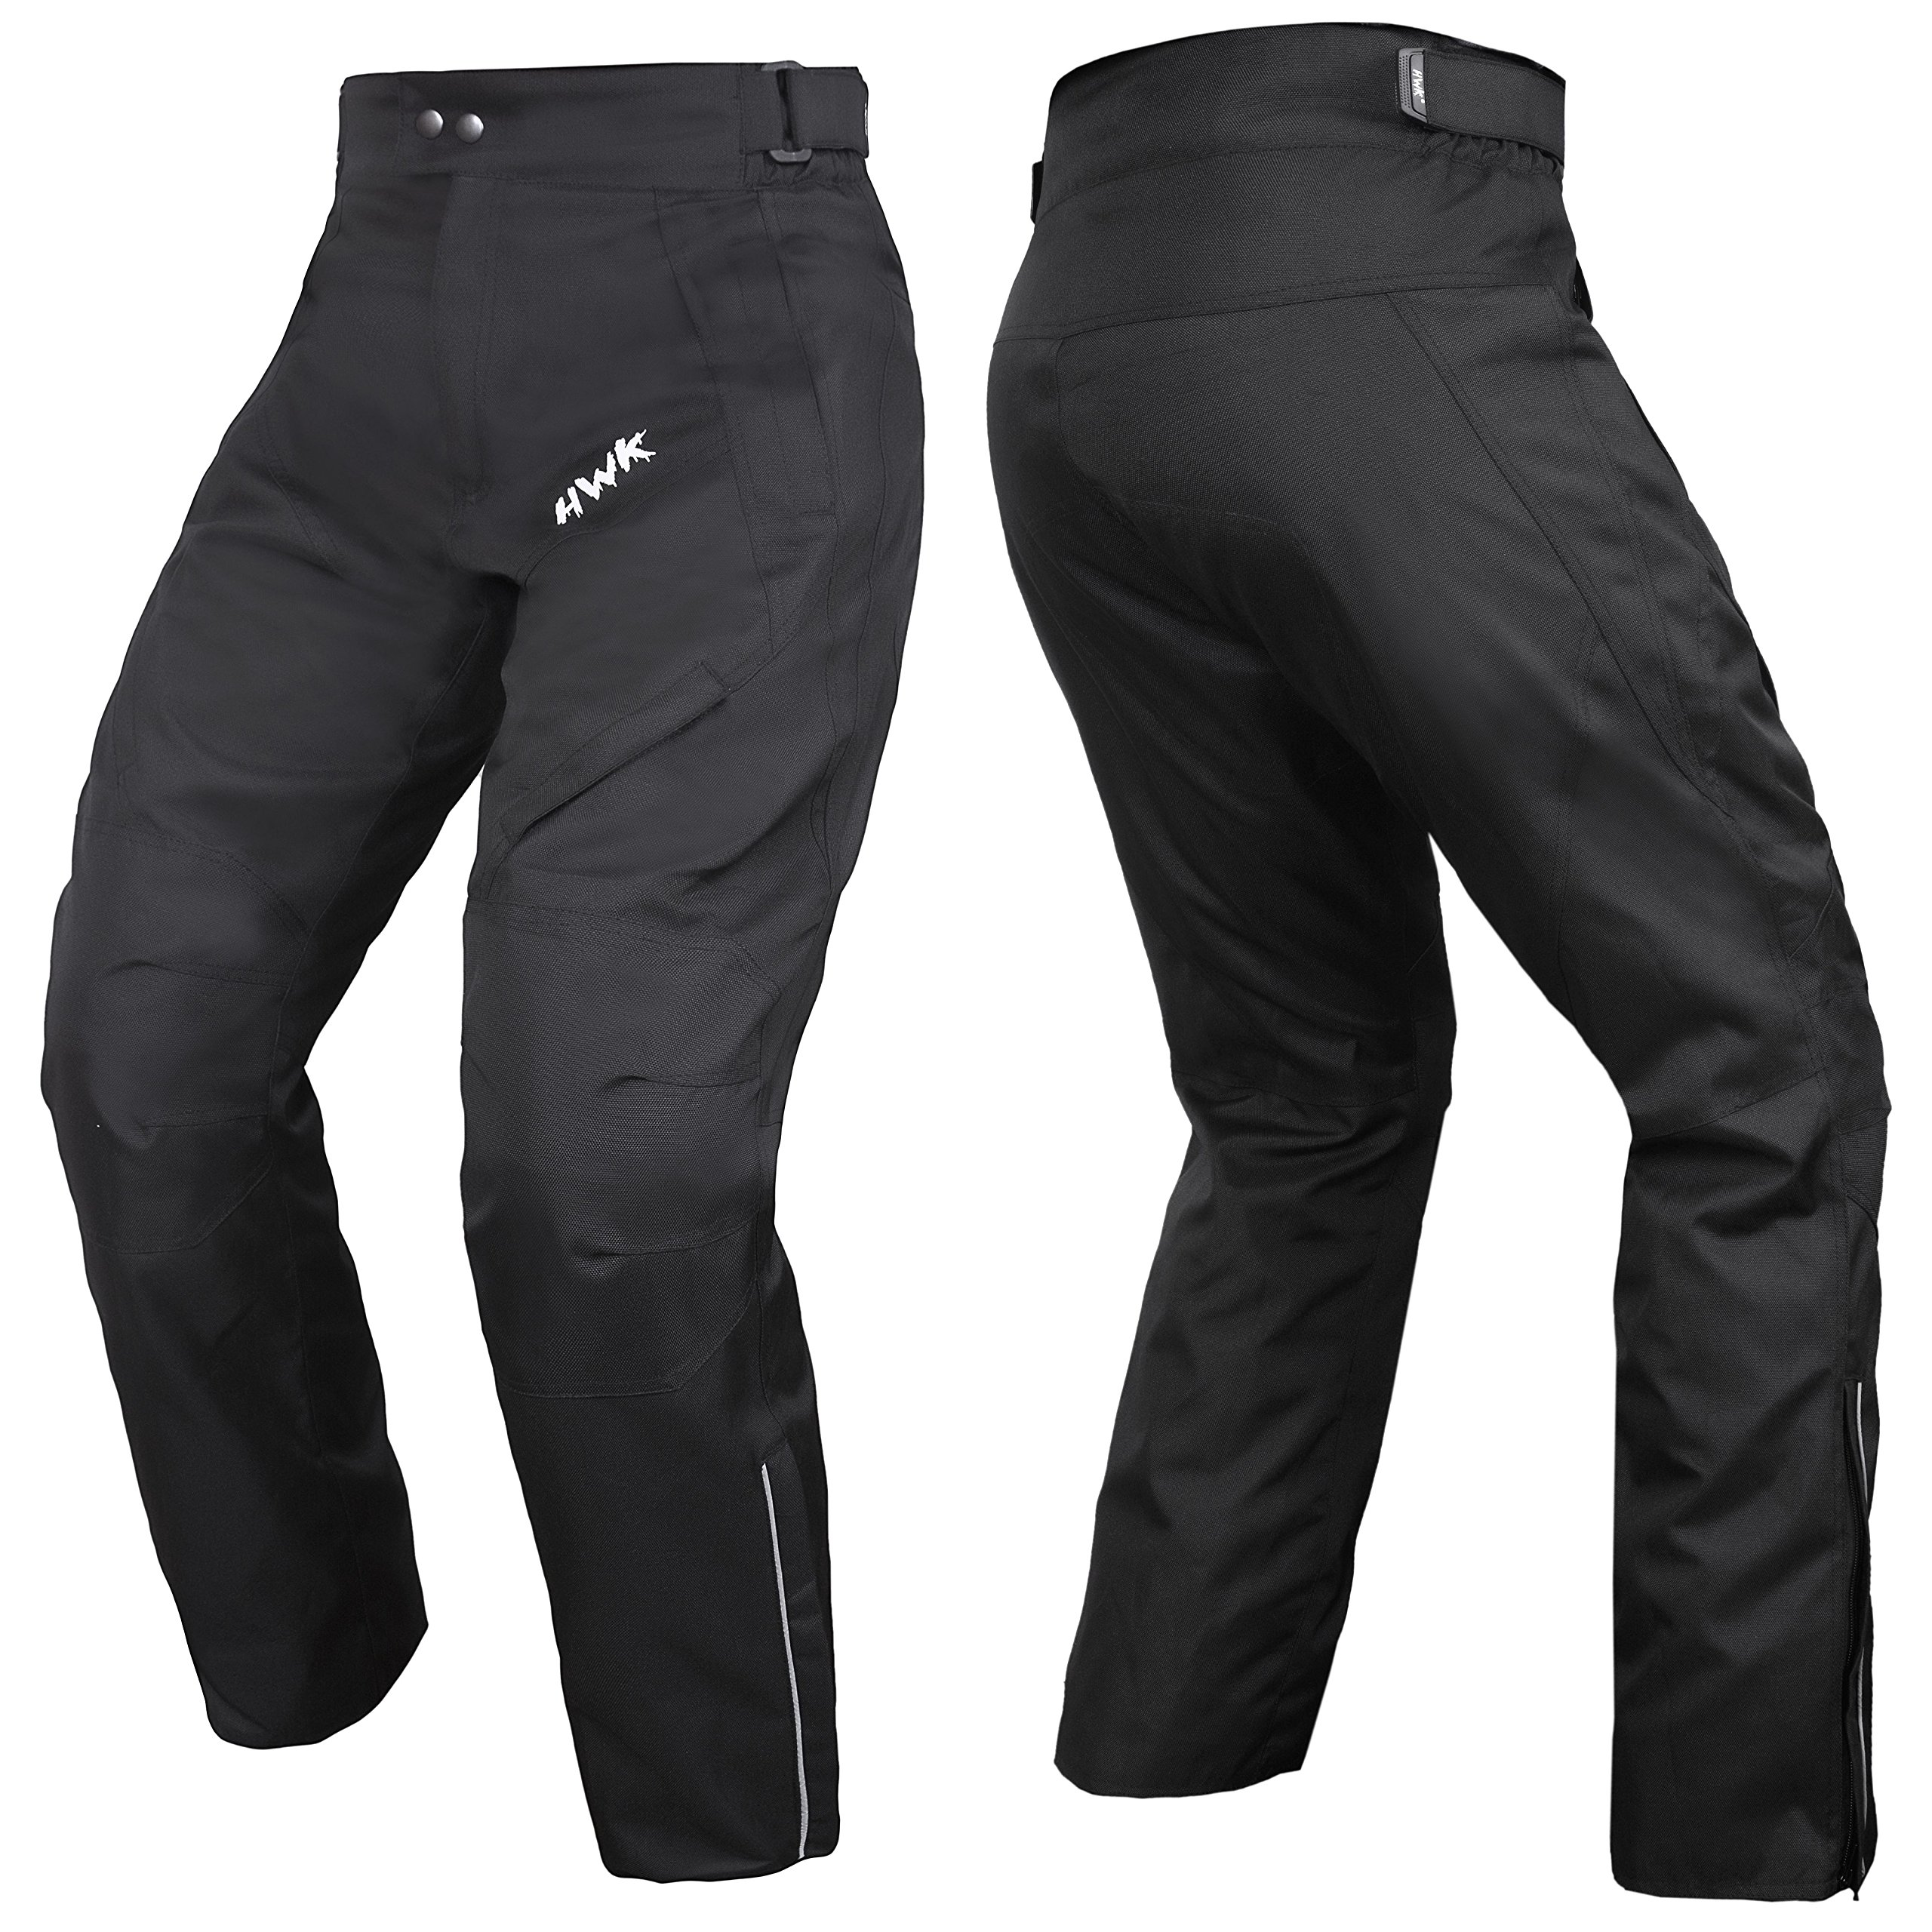 HWK Mens Black Textile Breathable Waterproof CE Armoured Motorbike Overpants Motorcycle Trousers/Pants - 1 year Guarantee Waist36''-38'' Inseam32''